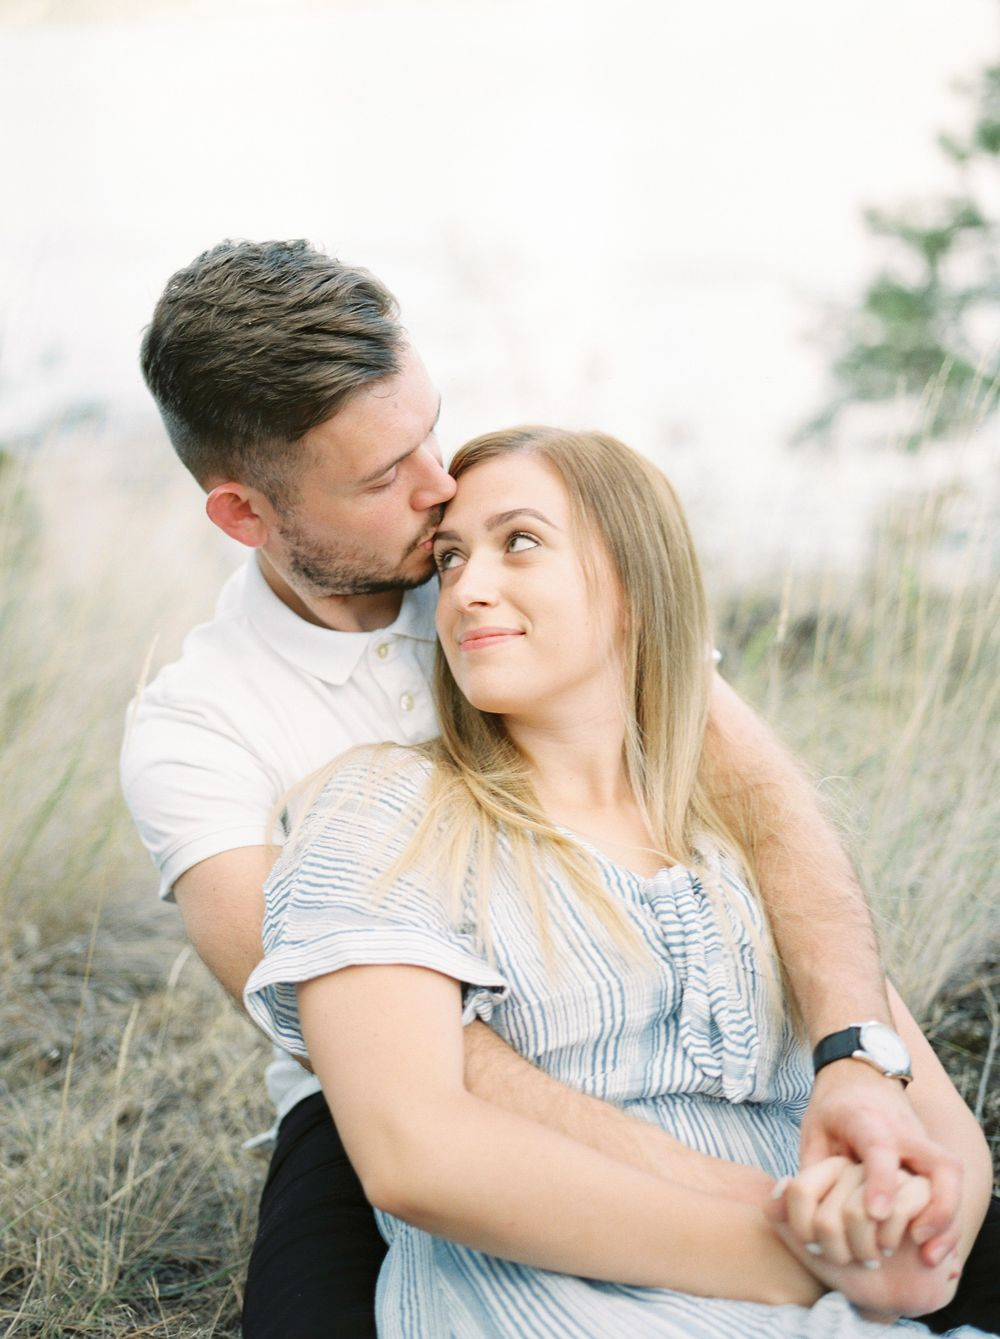 Engagement Session -Melissa Mae Photography - Kelowna, BC